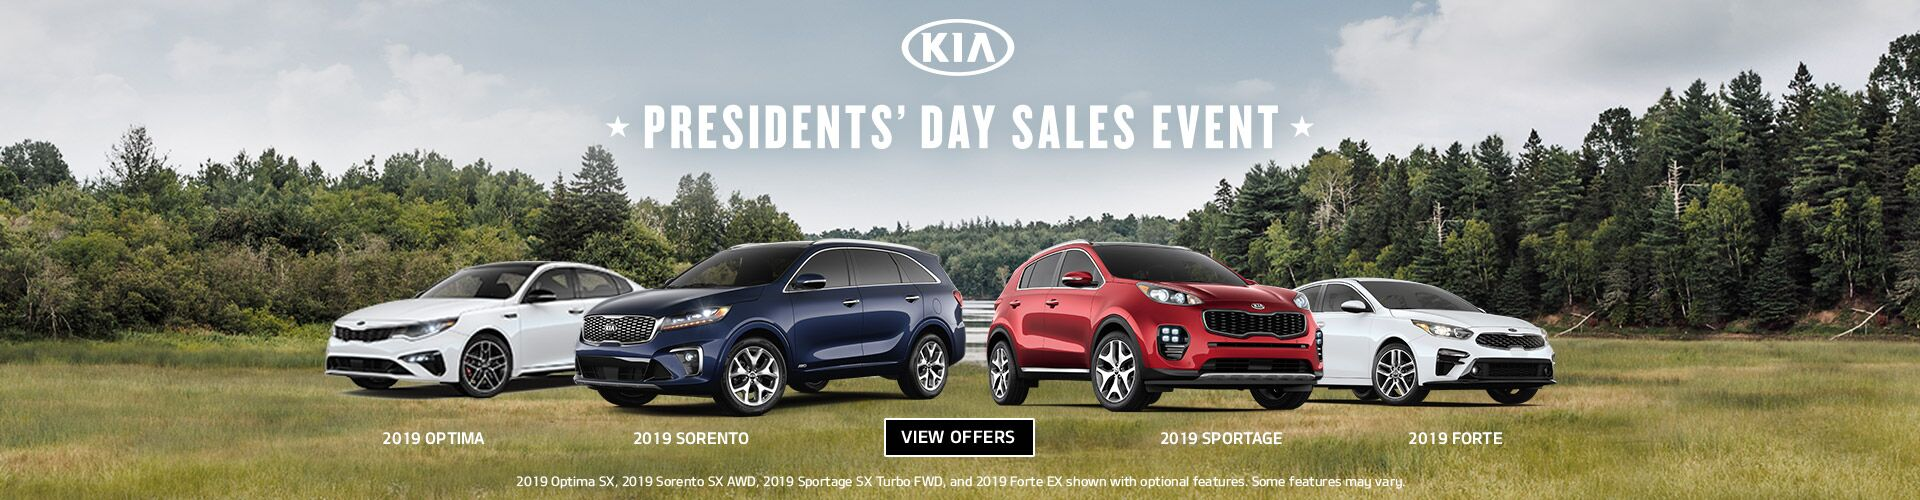 Presidents Day Sales Event